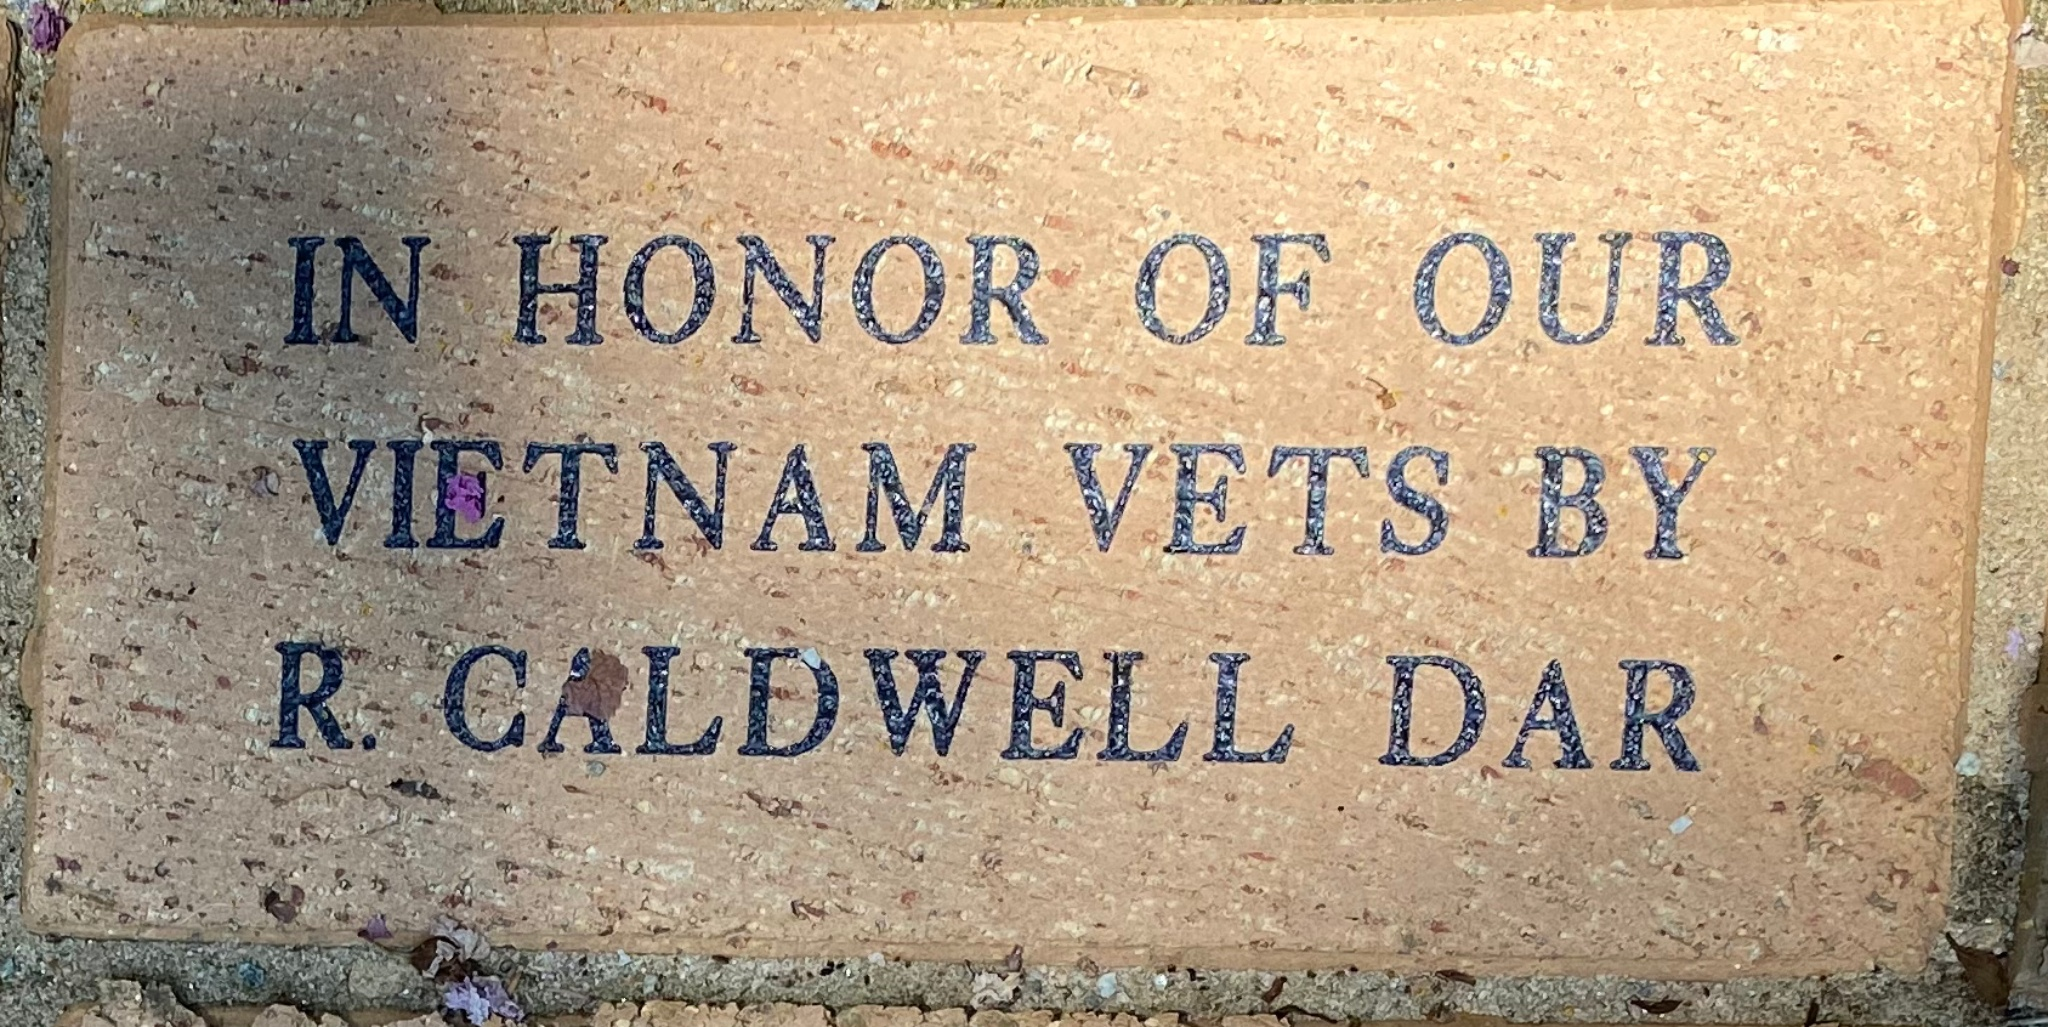 IN HONOR OF OUR VIETNAM VETS BY R. CALDWELL DAR